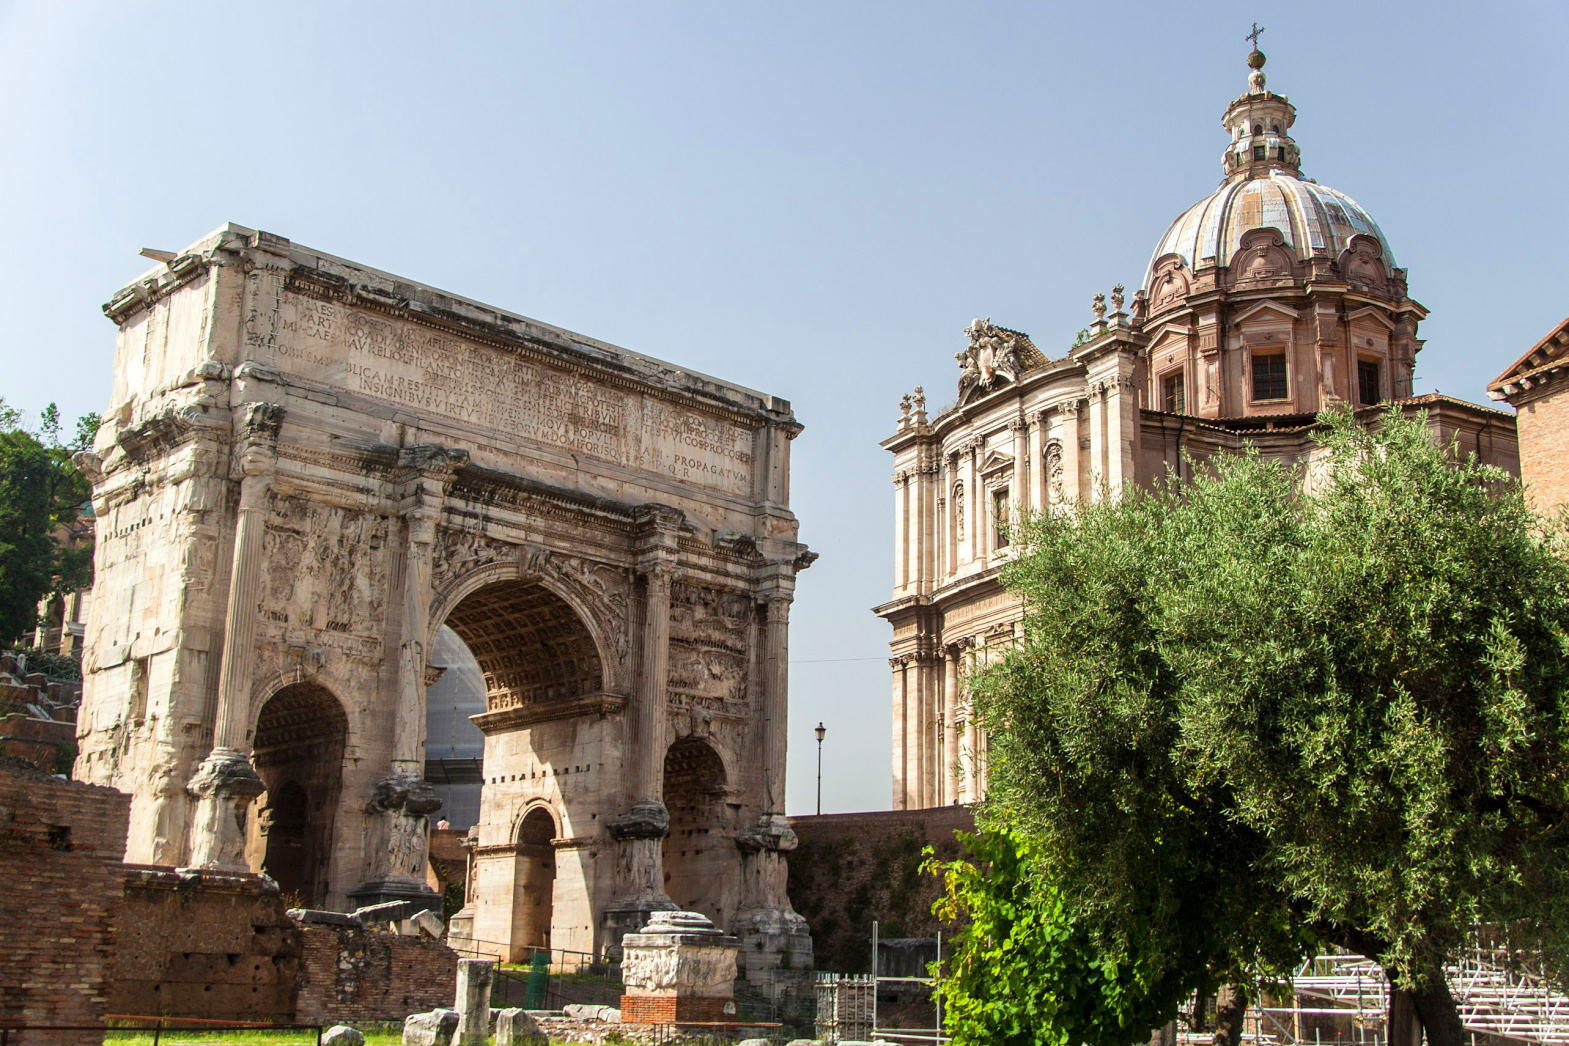 Arch of Septimius Severus and church of Santi Luca e Martina at the Roman Forum, Rome